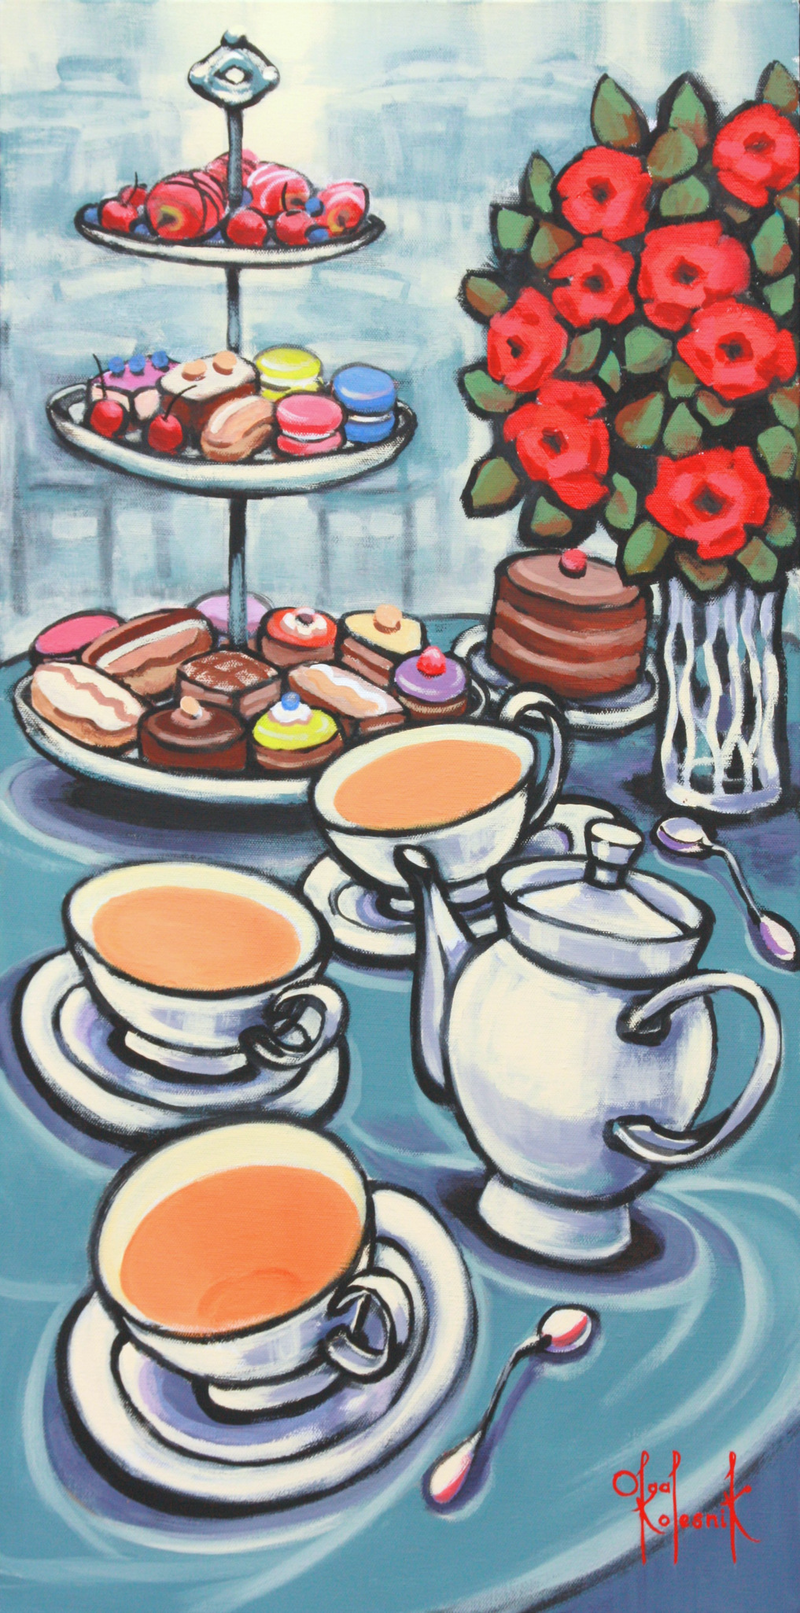 (CreativeWork) High Tea - STILL LIFE by Olga Kolesnik. Acrylic Paint. Shop online at Bluethumb.